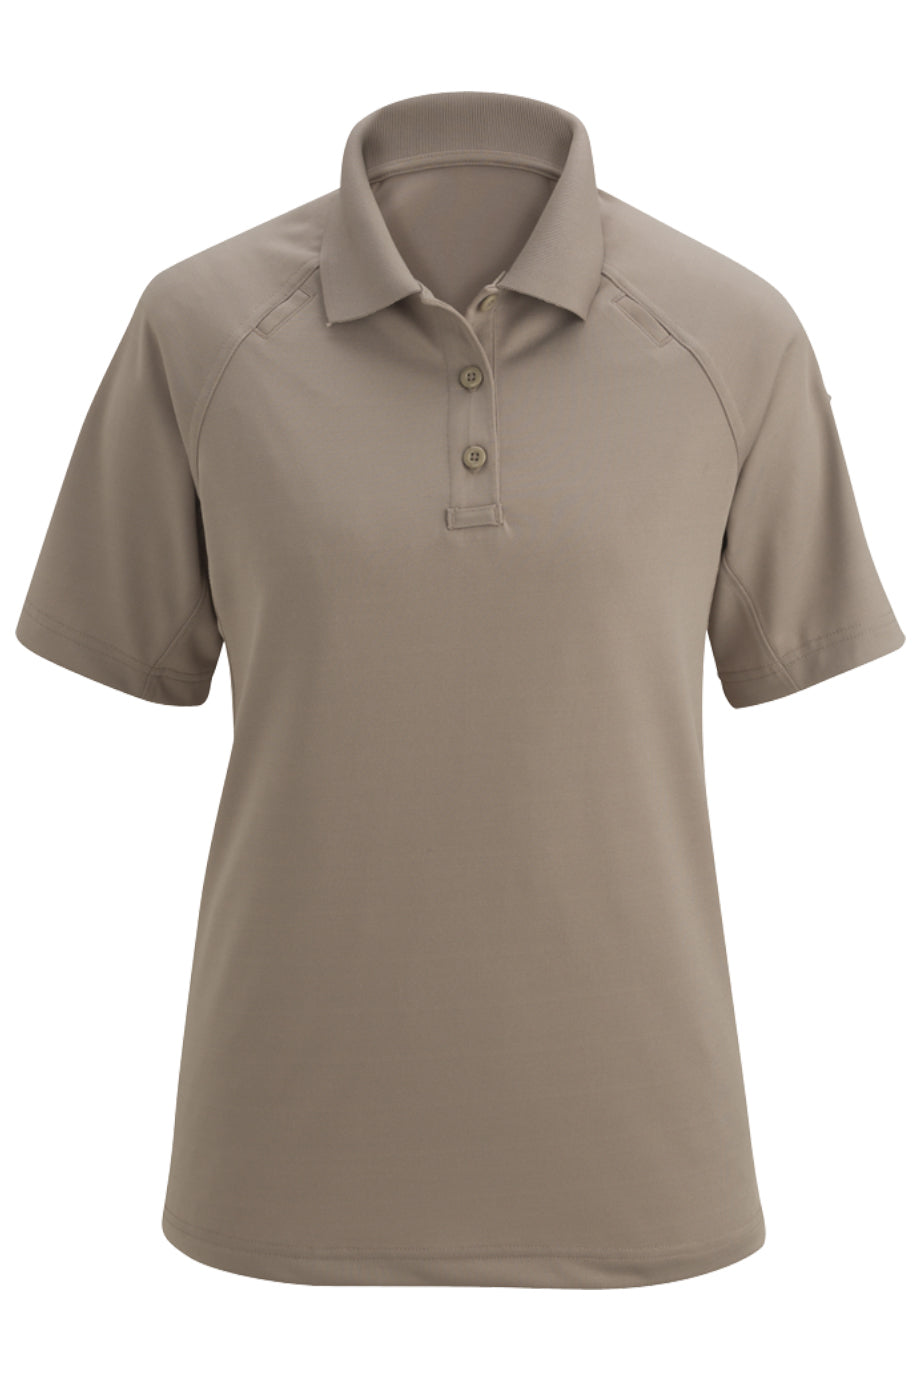 Edwards Ladies Tactical Snag-Proof Short Sleeve Polo